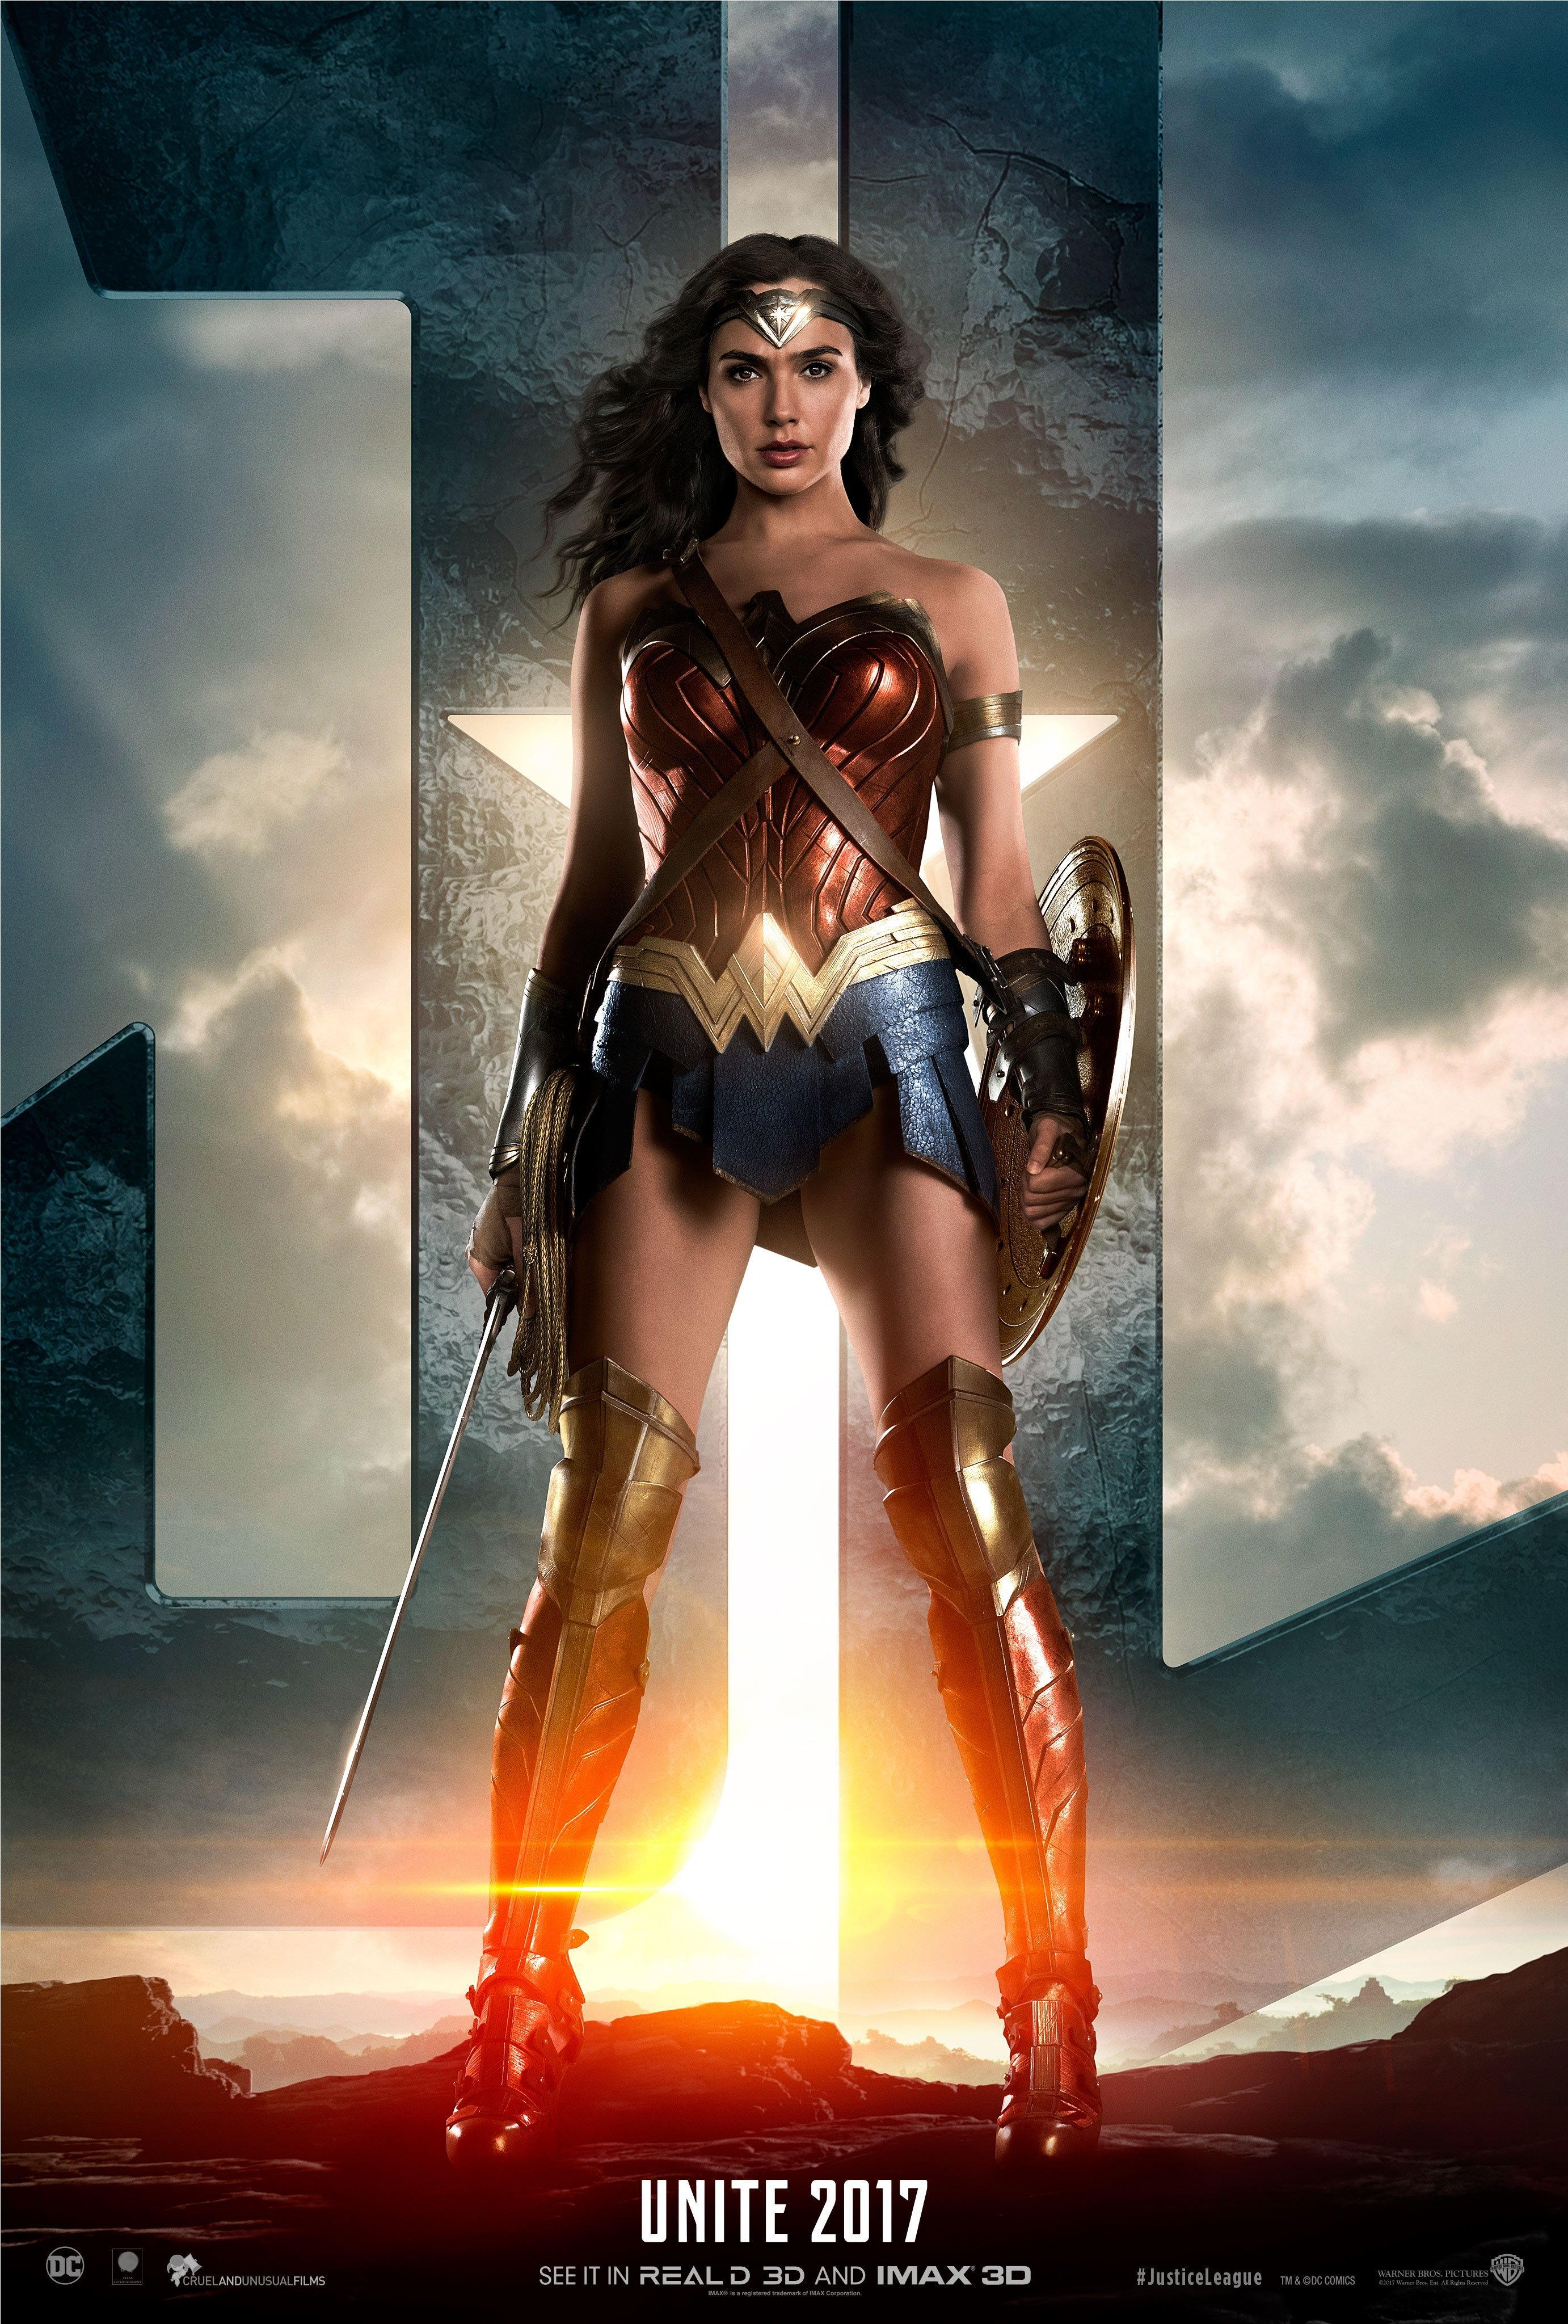 The Gospel of Wonder Woman: Blessings are to Bless, Yoga is for OFF the Mat, and Enlightenment is to Love